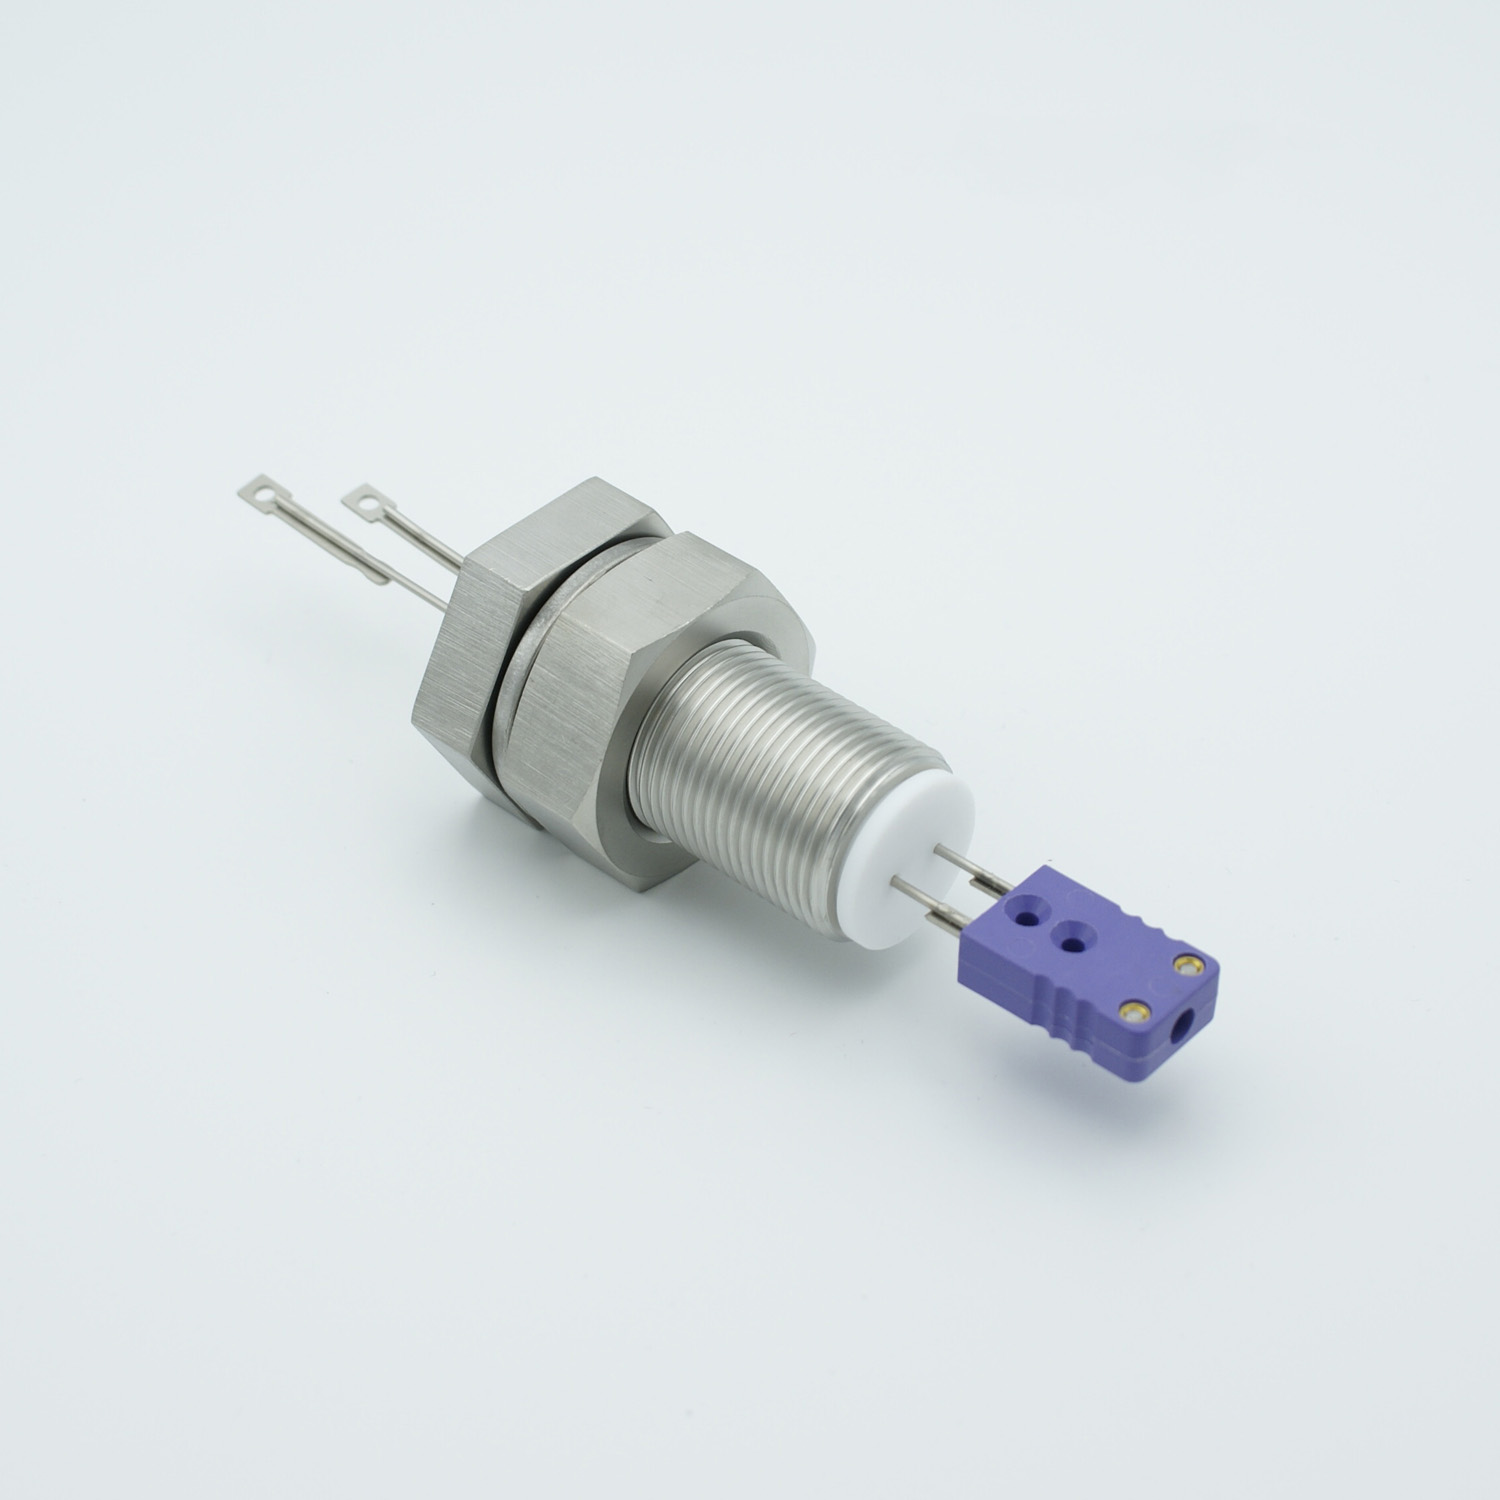 1 pair Thermocouple type-E feedthrough with both side connectors included, base plate fitting